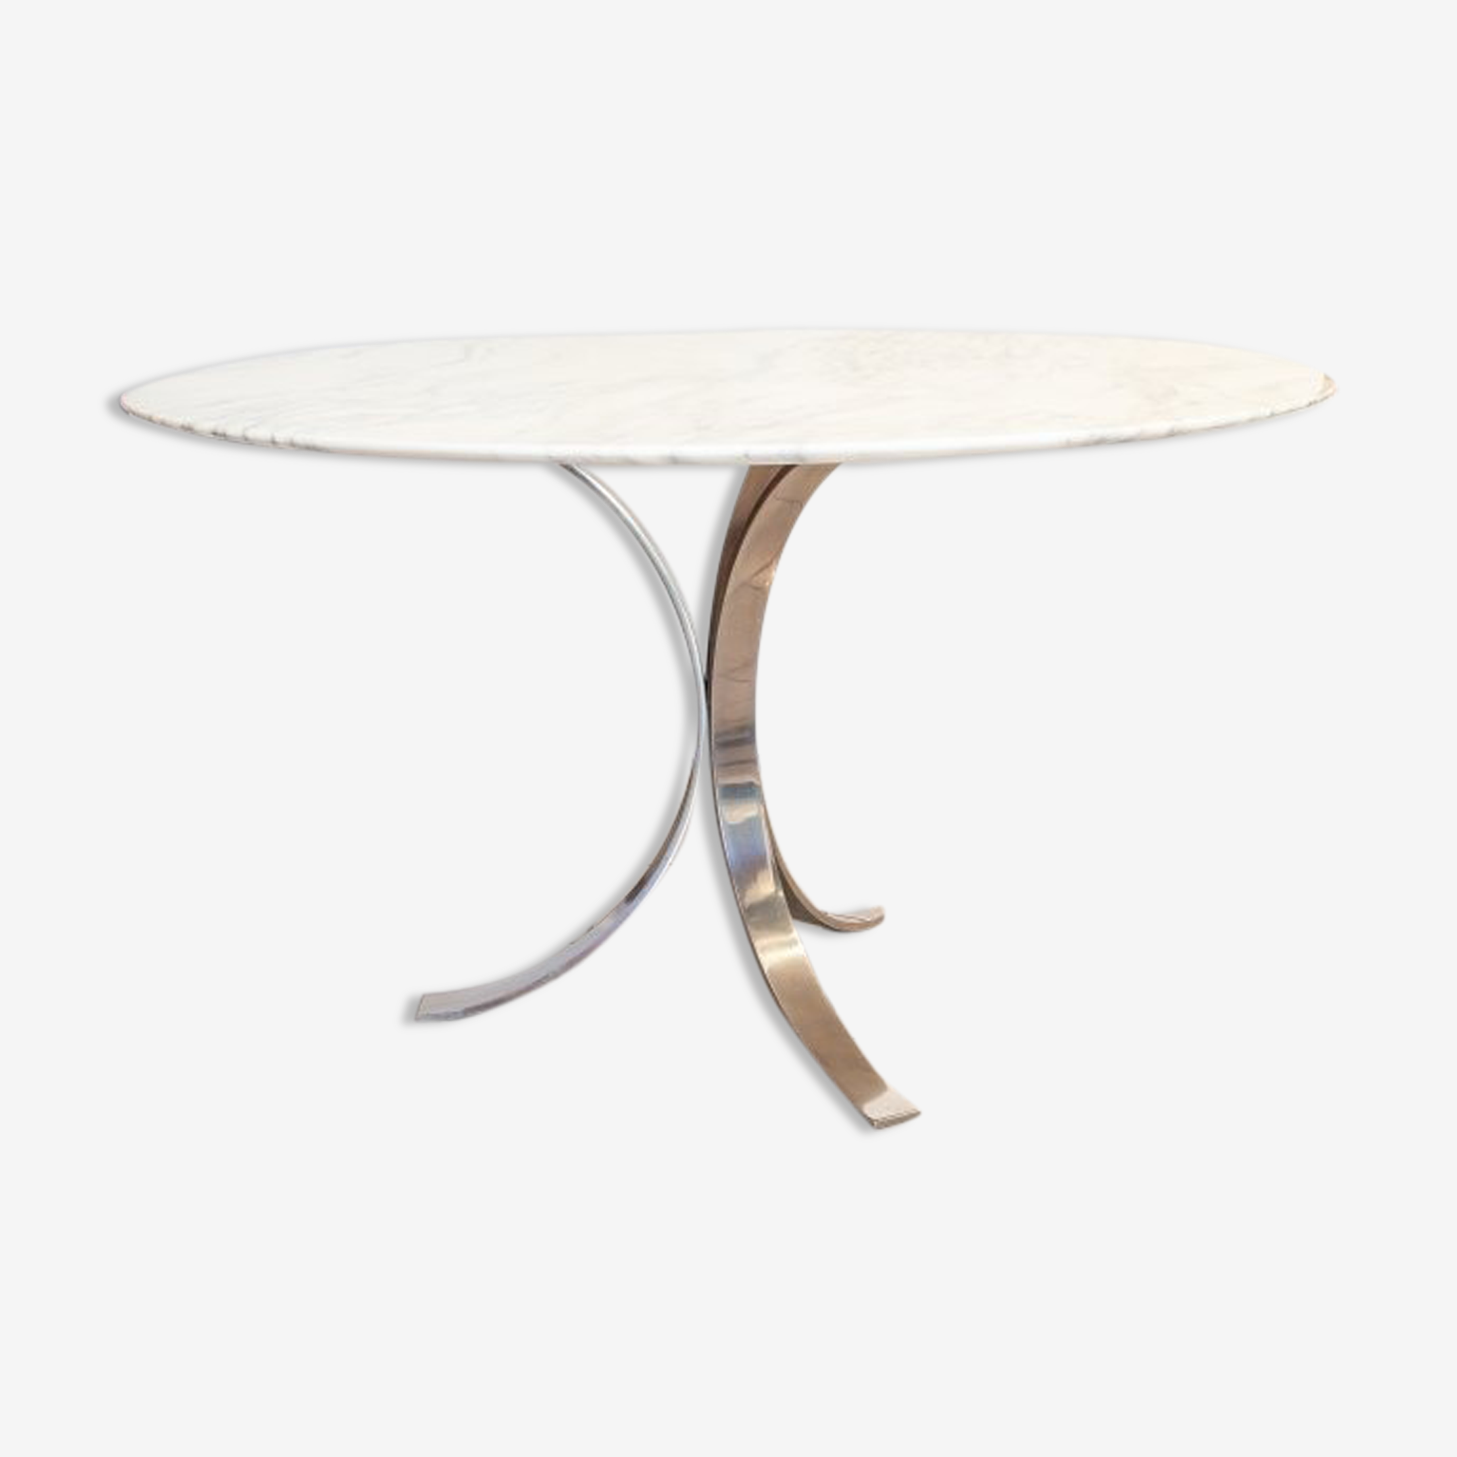 Marble glass round table